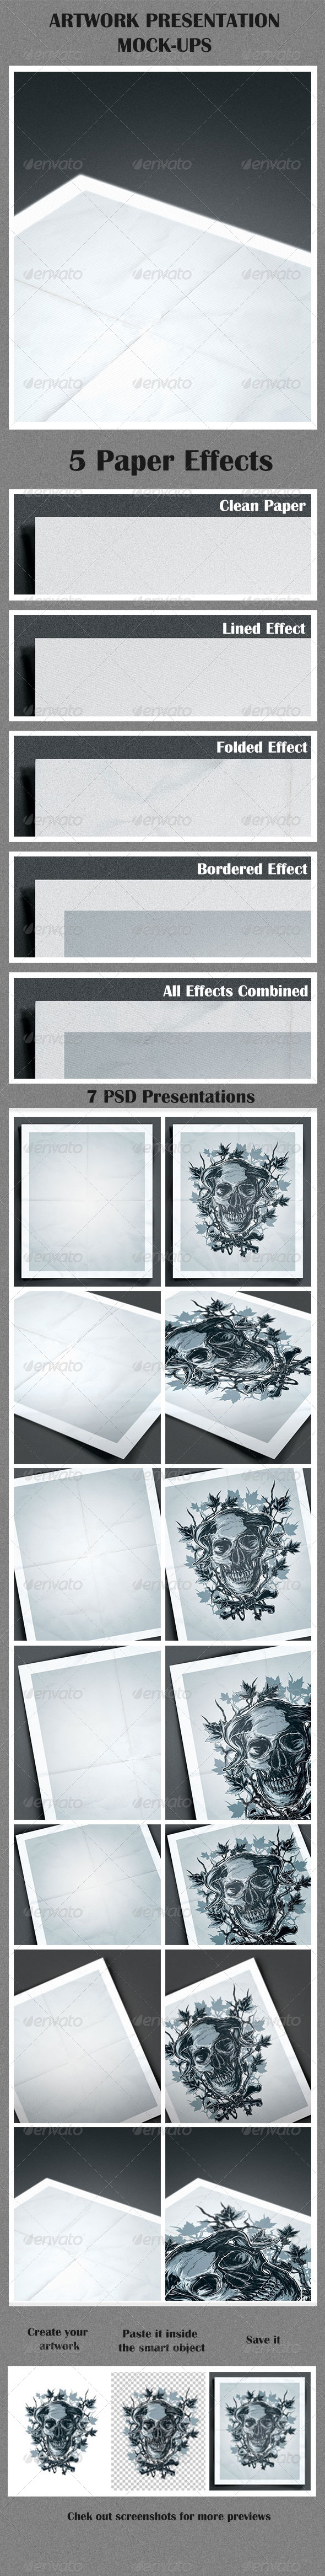 Artwork Presentation Mock-Ups - Print Product Mock-Ups